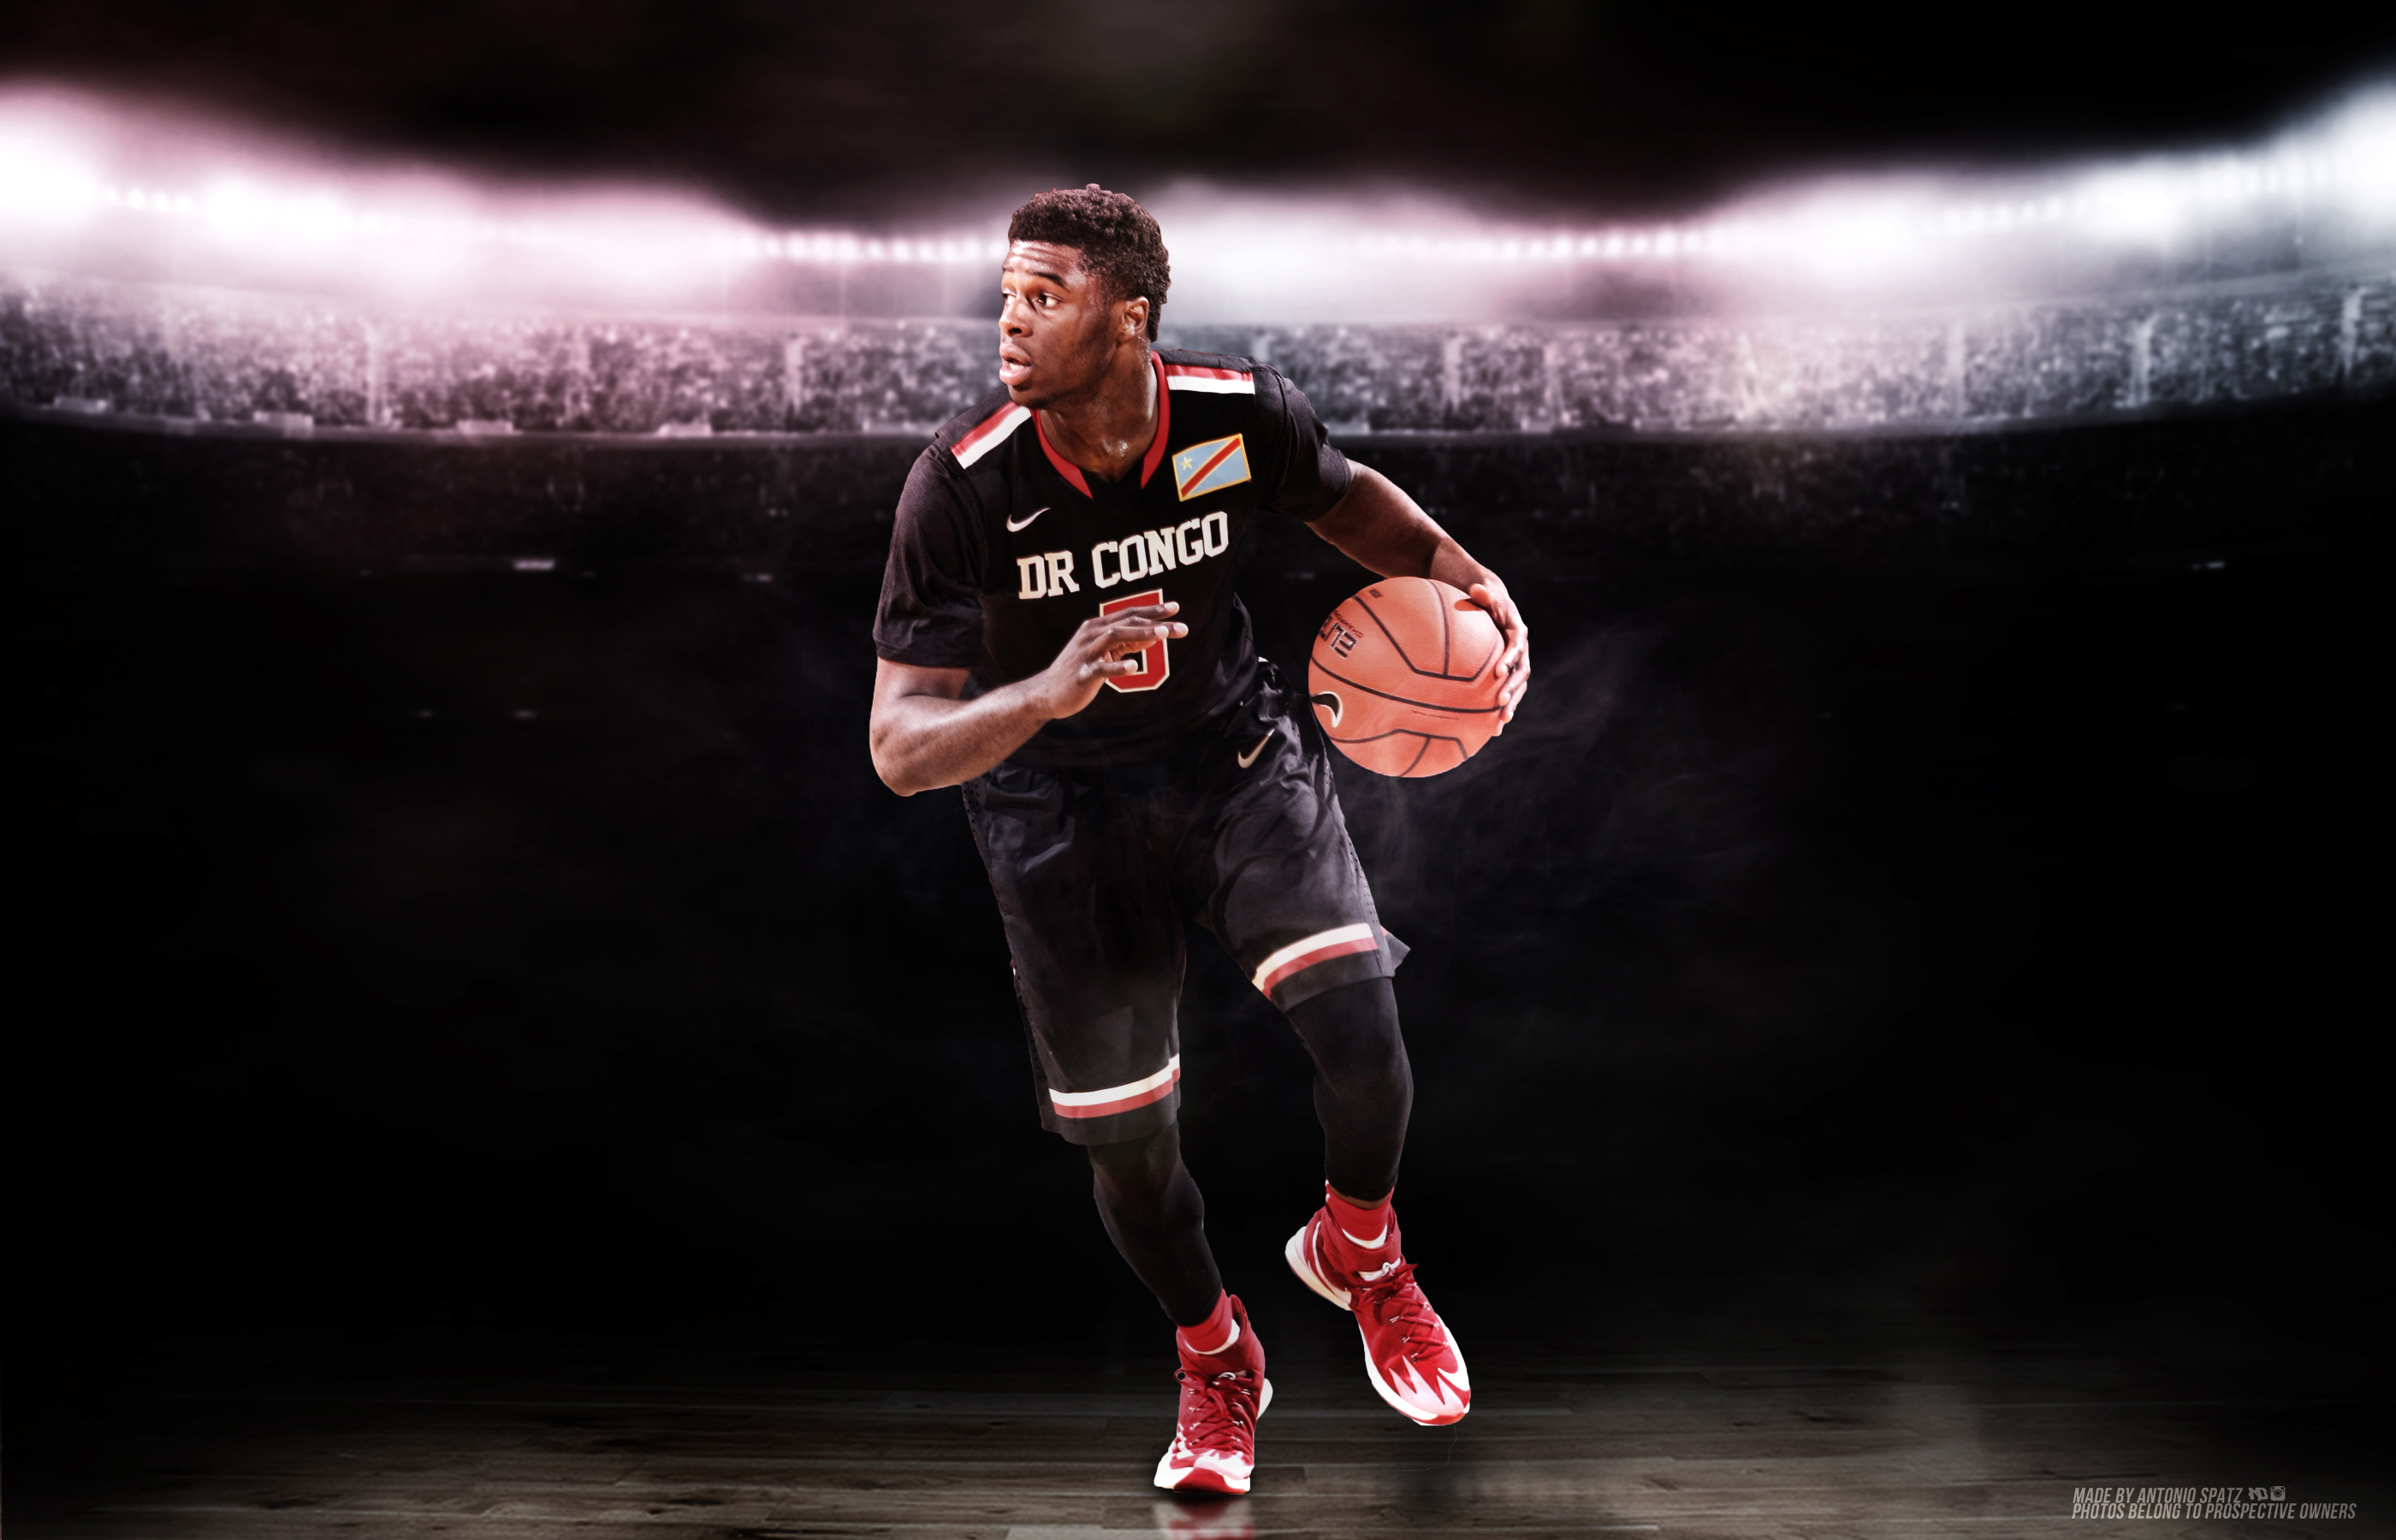 Emmanuel Mudiay Congo National Jersey Wallpaper